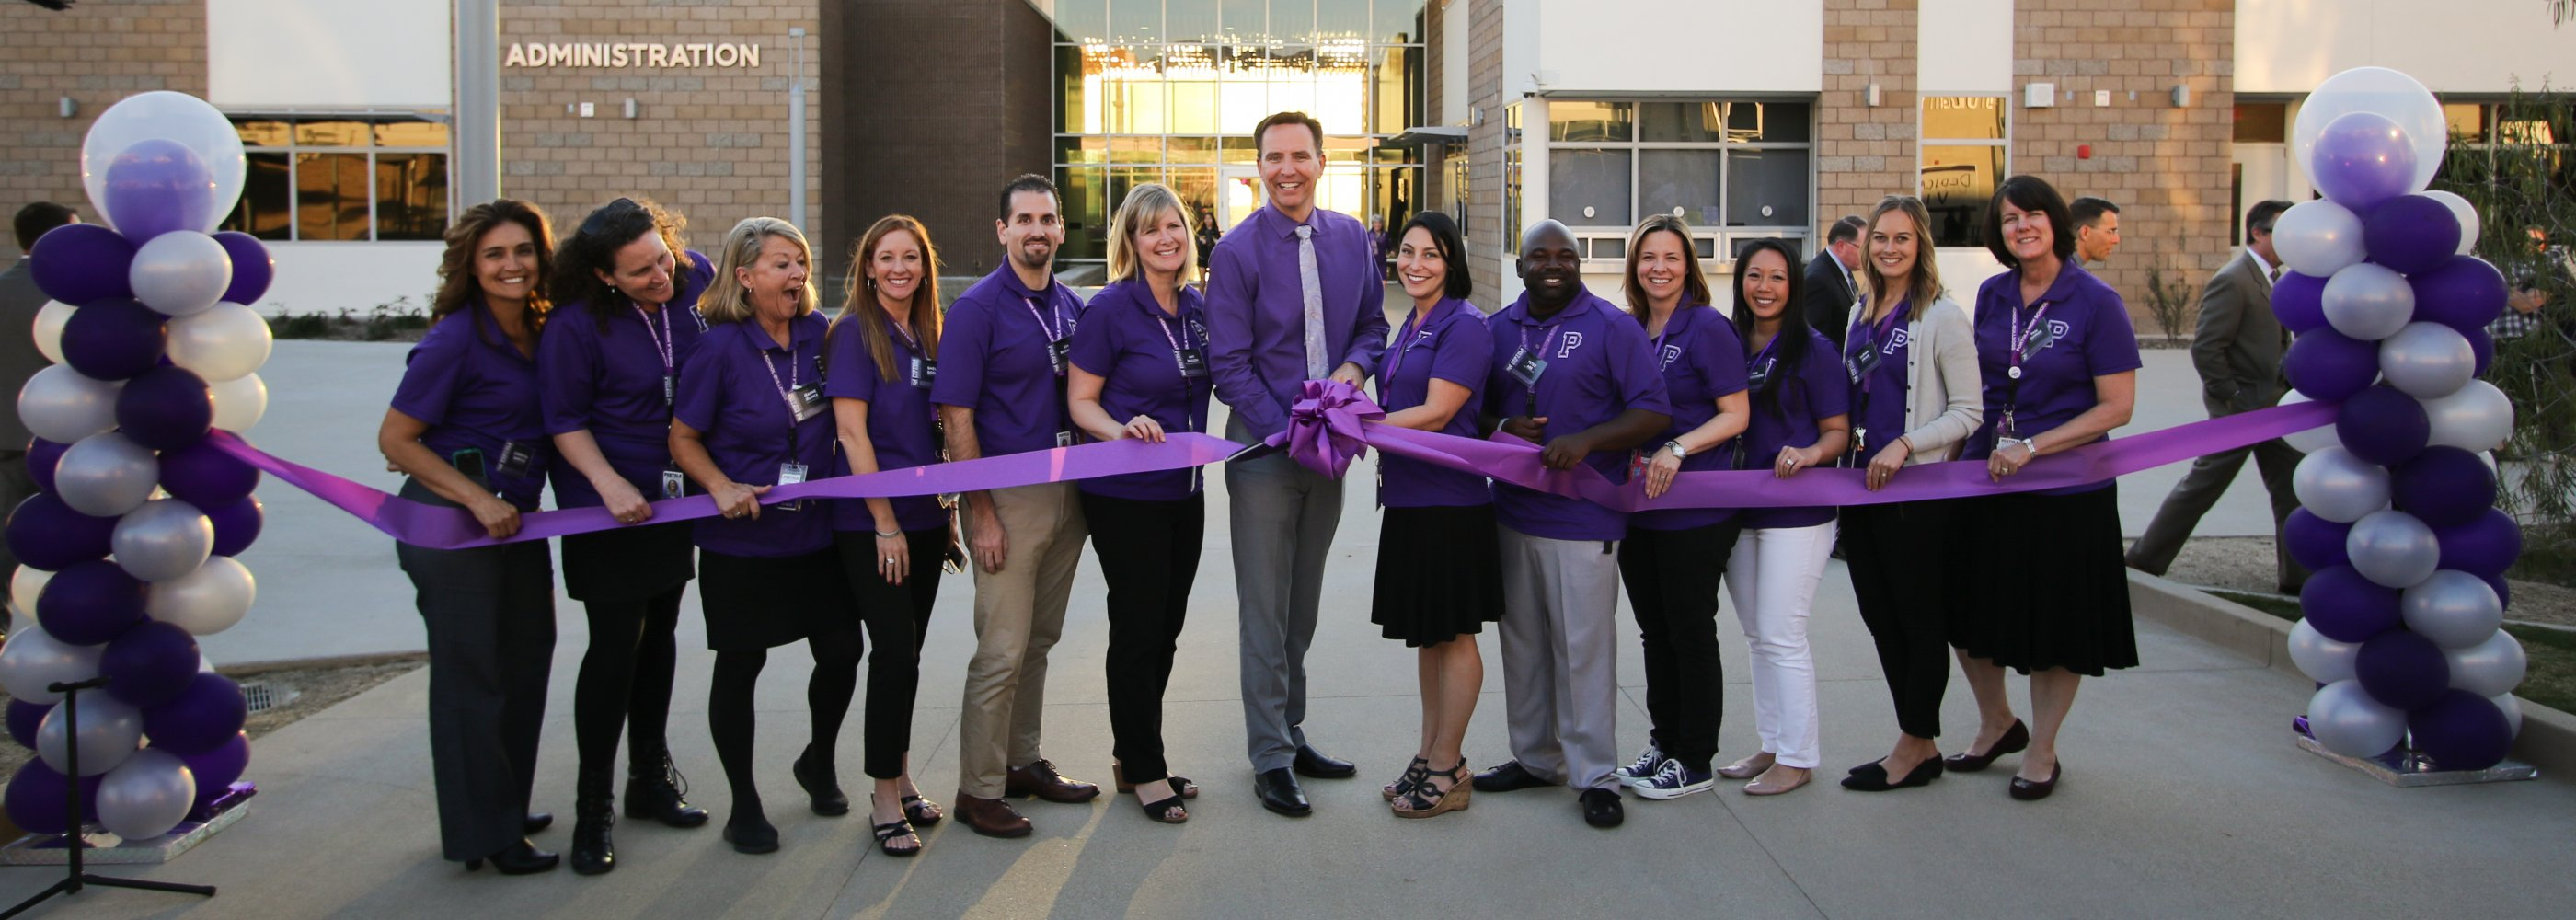 PHS admin staff cutting ribbon